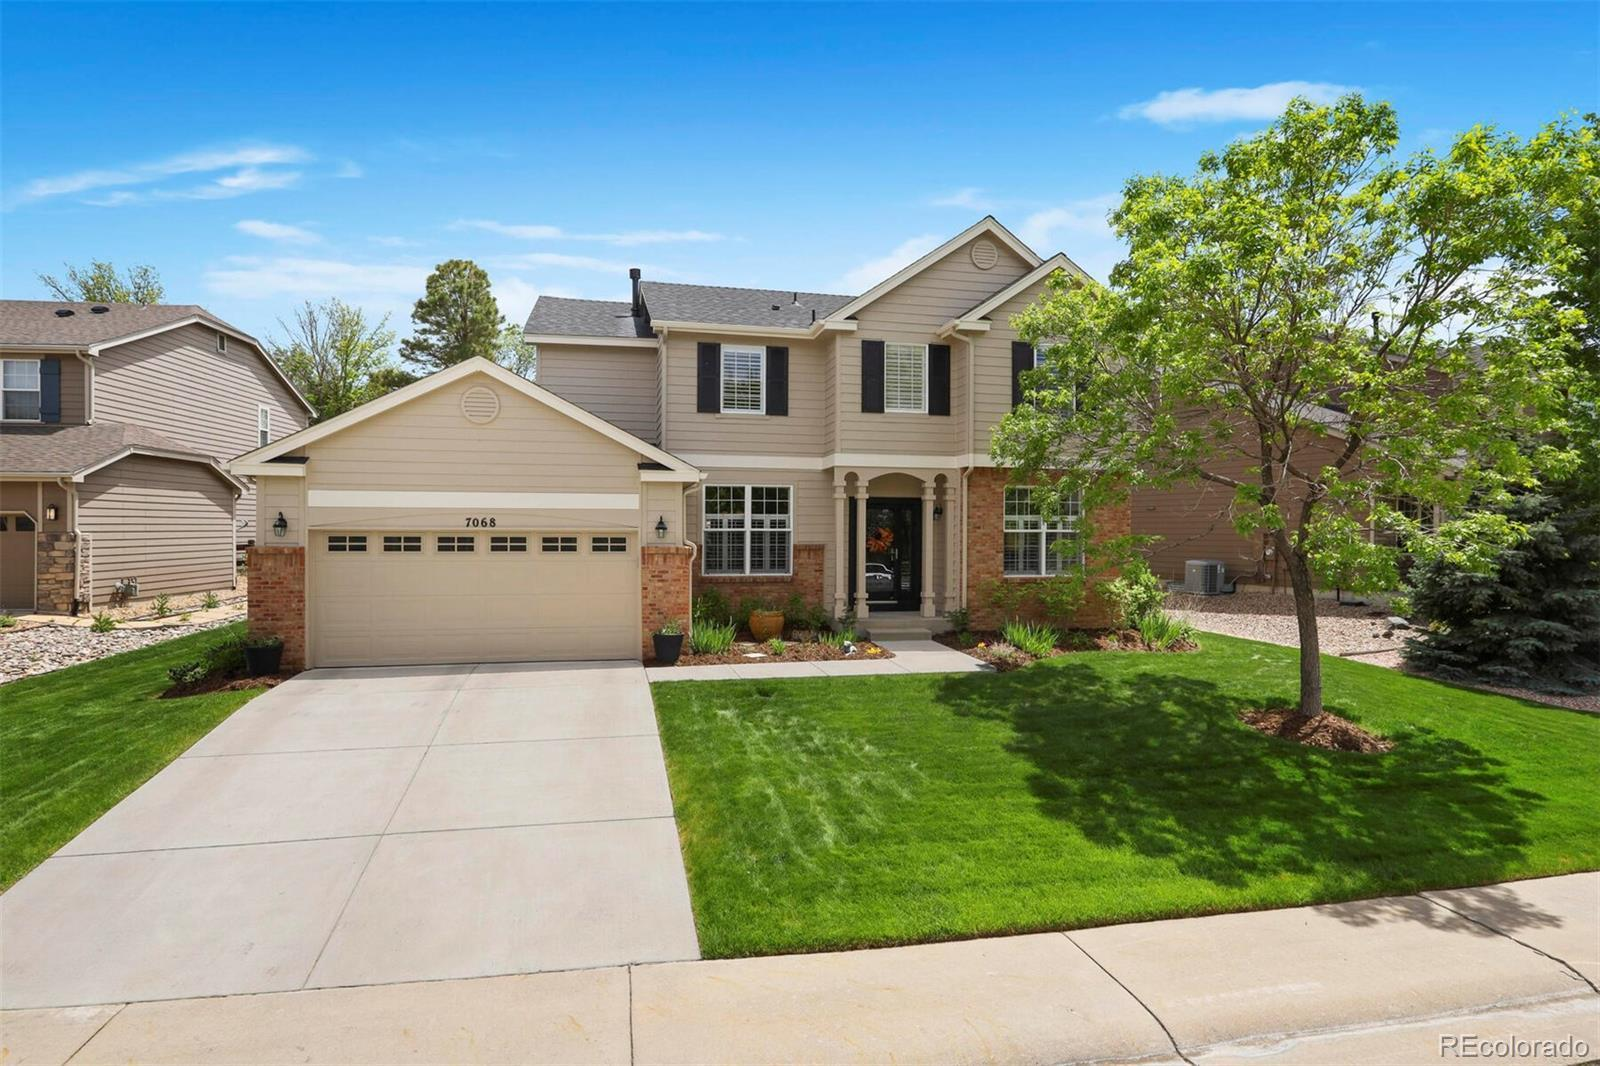 7068 Welford Place, Castle Pines, CO 80108 - #: 4462813